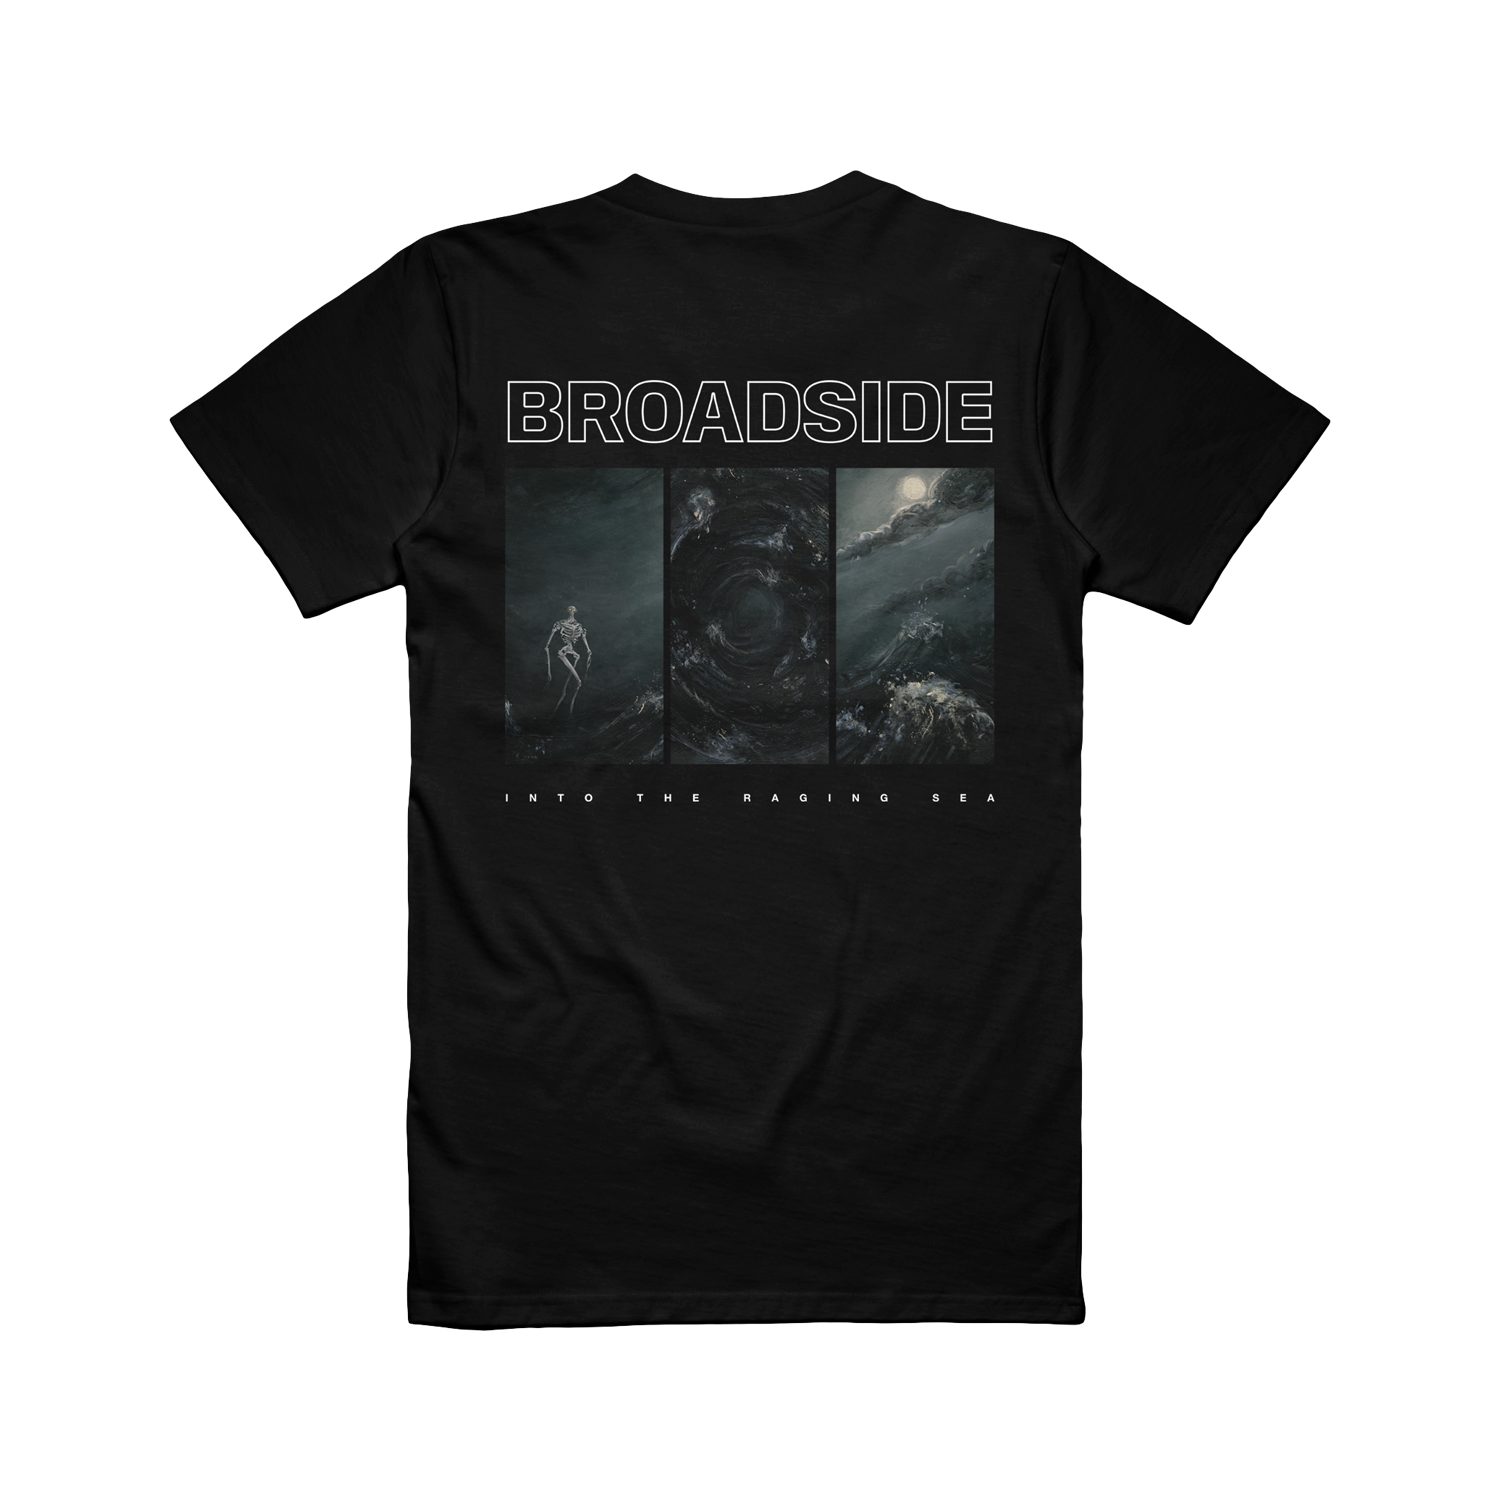 Broadside - Into The Raging Sea Album Art Tee